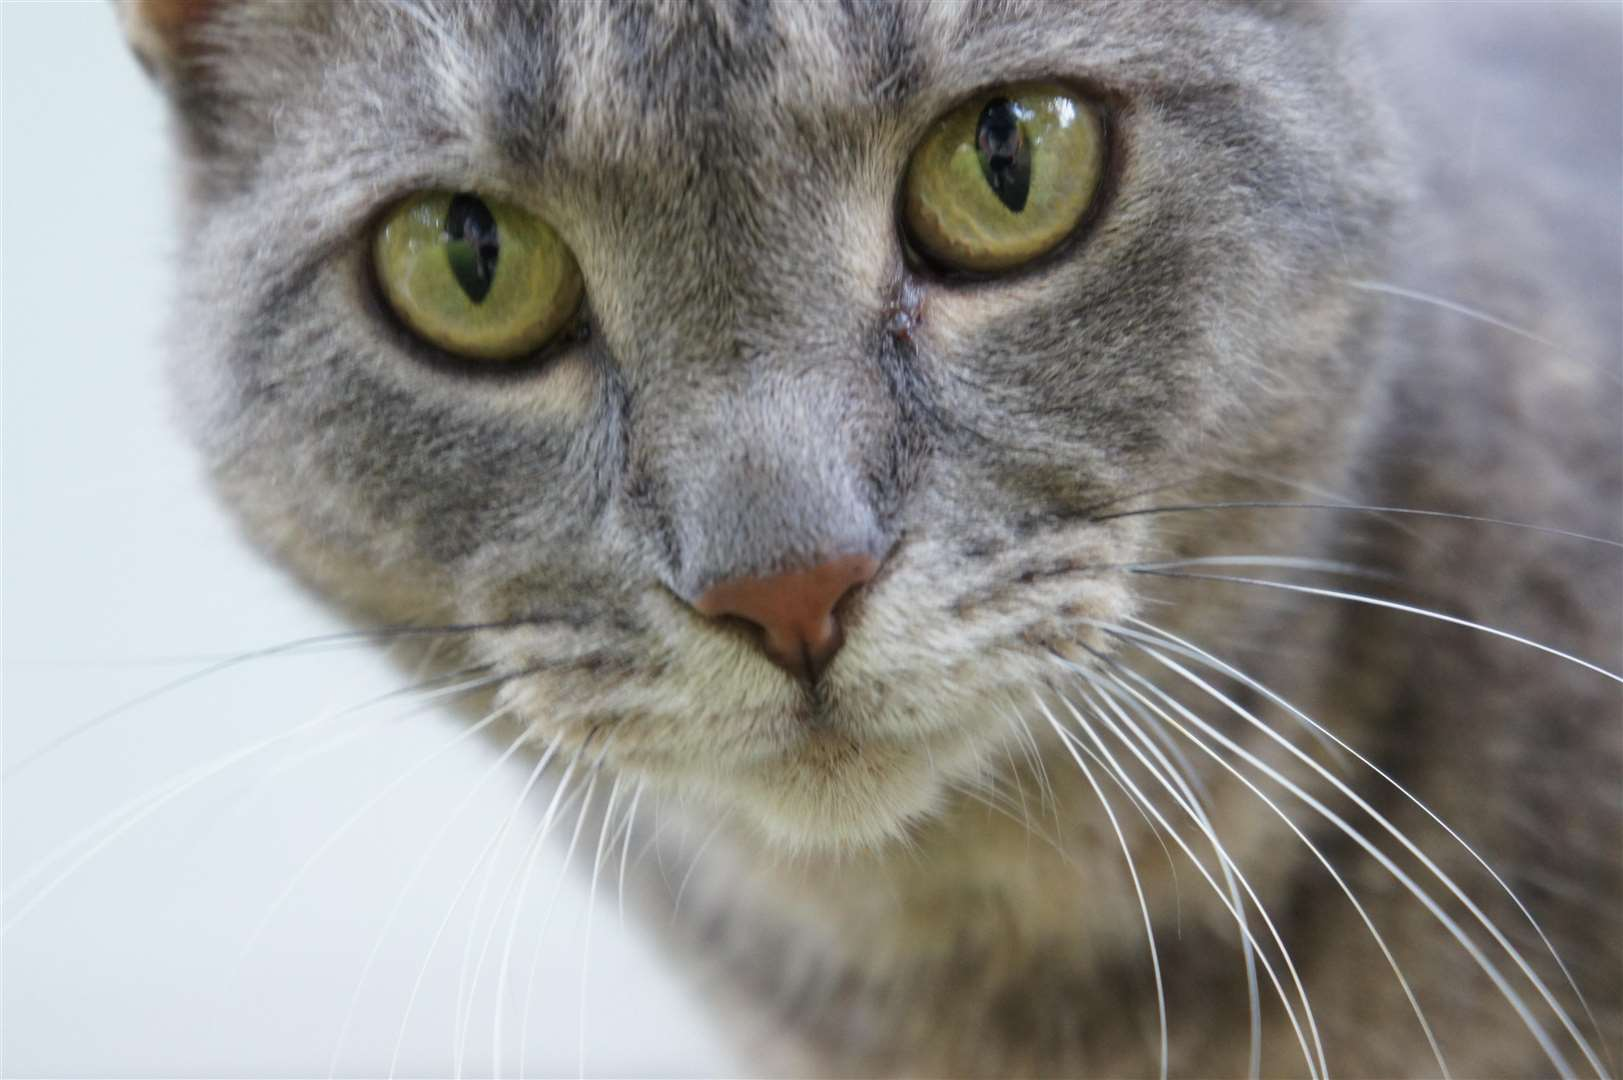 Stock image of grey tabby cat. Credit: Wikimedia SportsandHistoryReader521 (4293560)